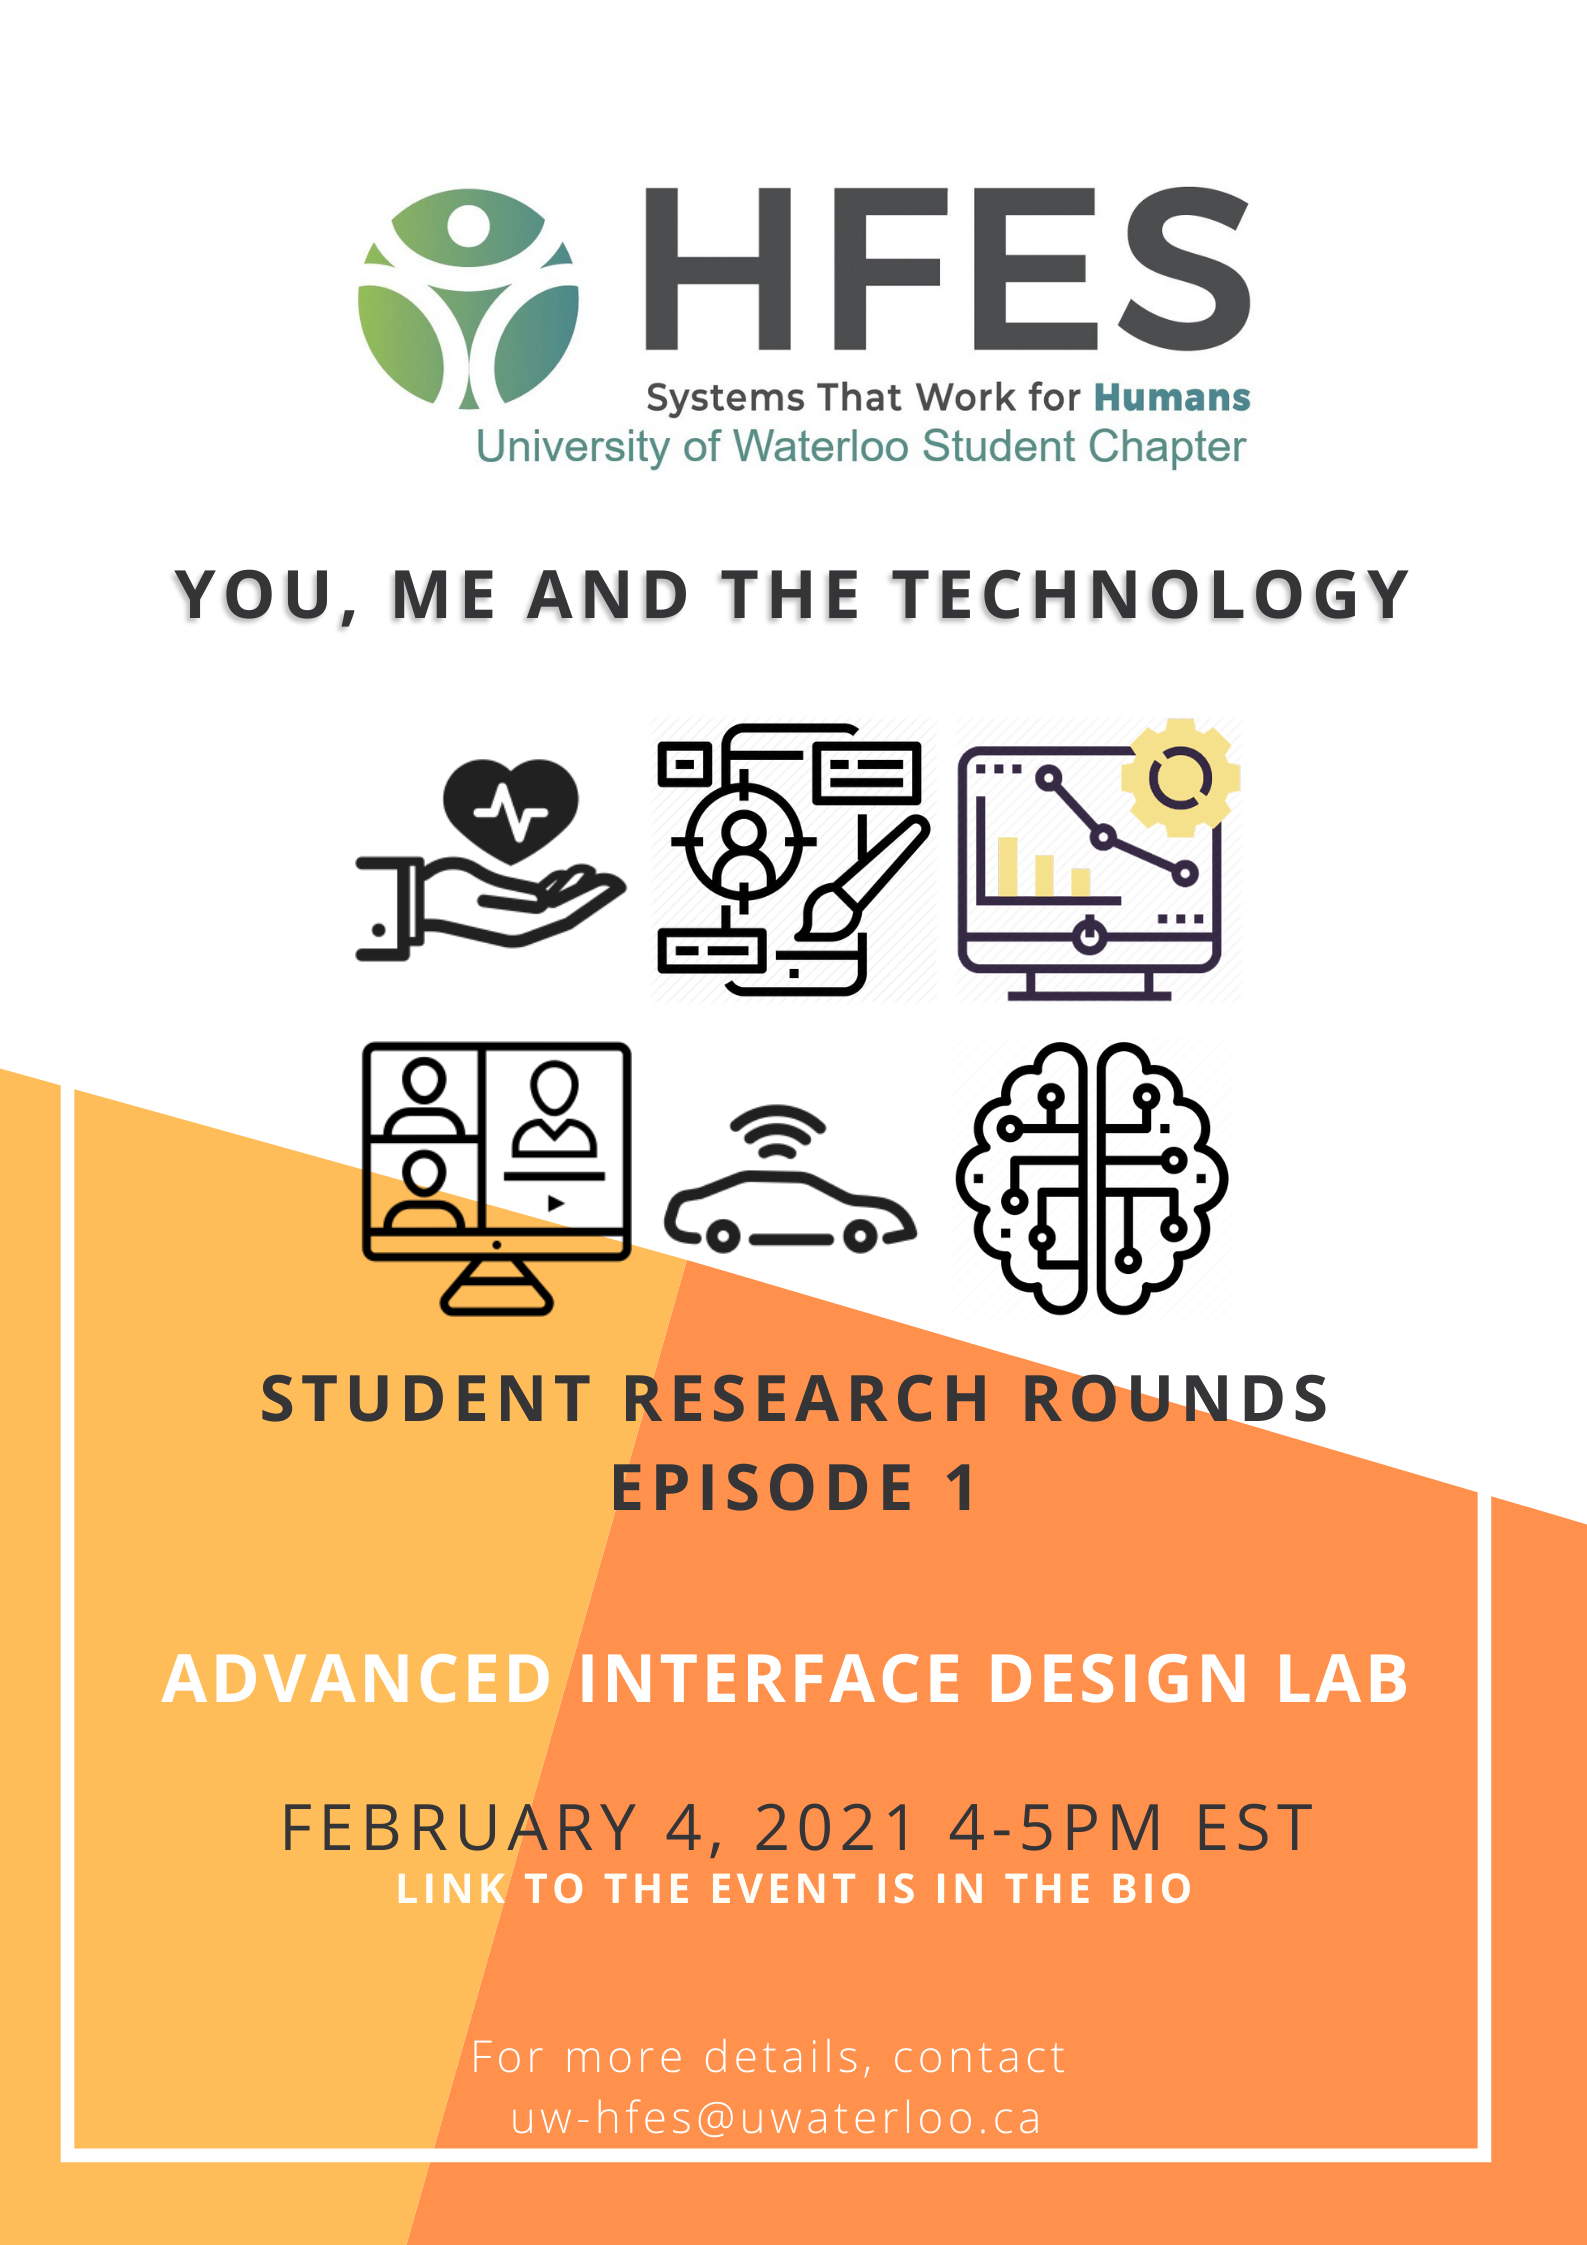 Student Research Rounds, Episode 1 featuring Advanced Interface Design Lab